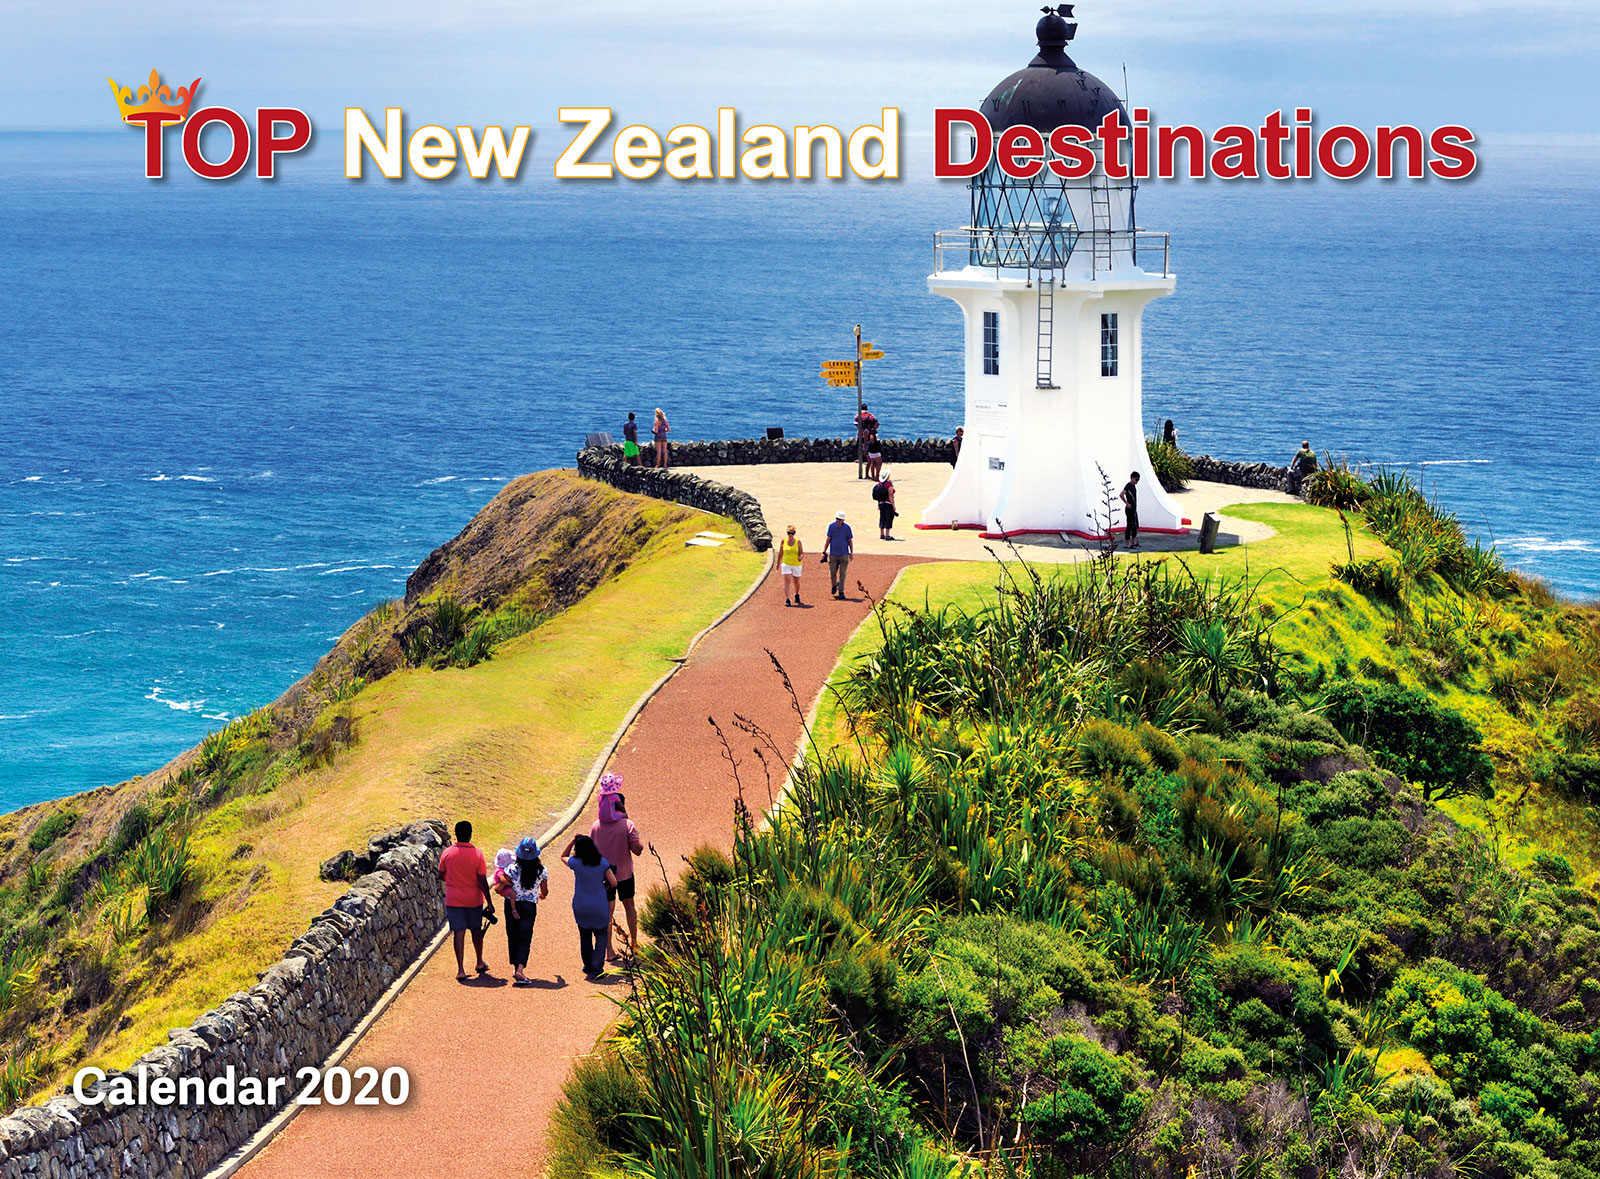 Top New Zealand Destinations 2019